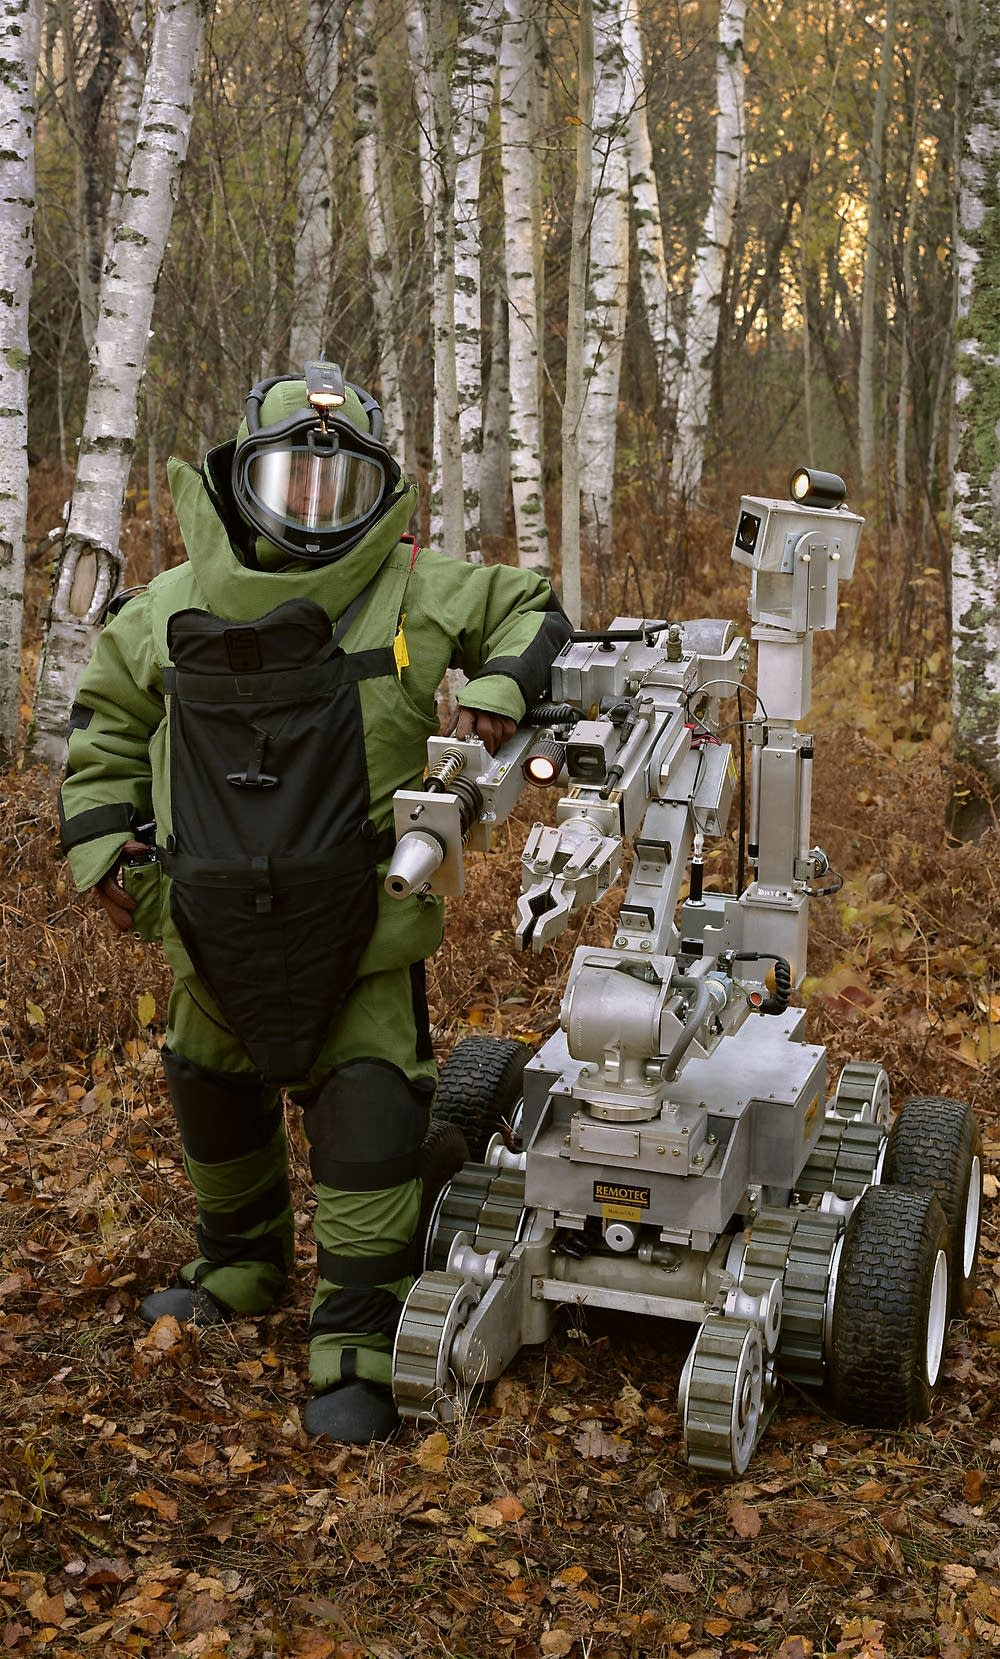 Bomb suit and robot